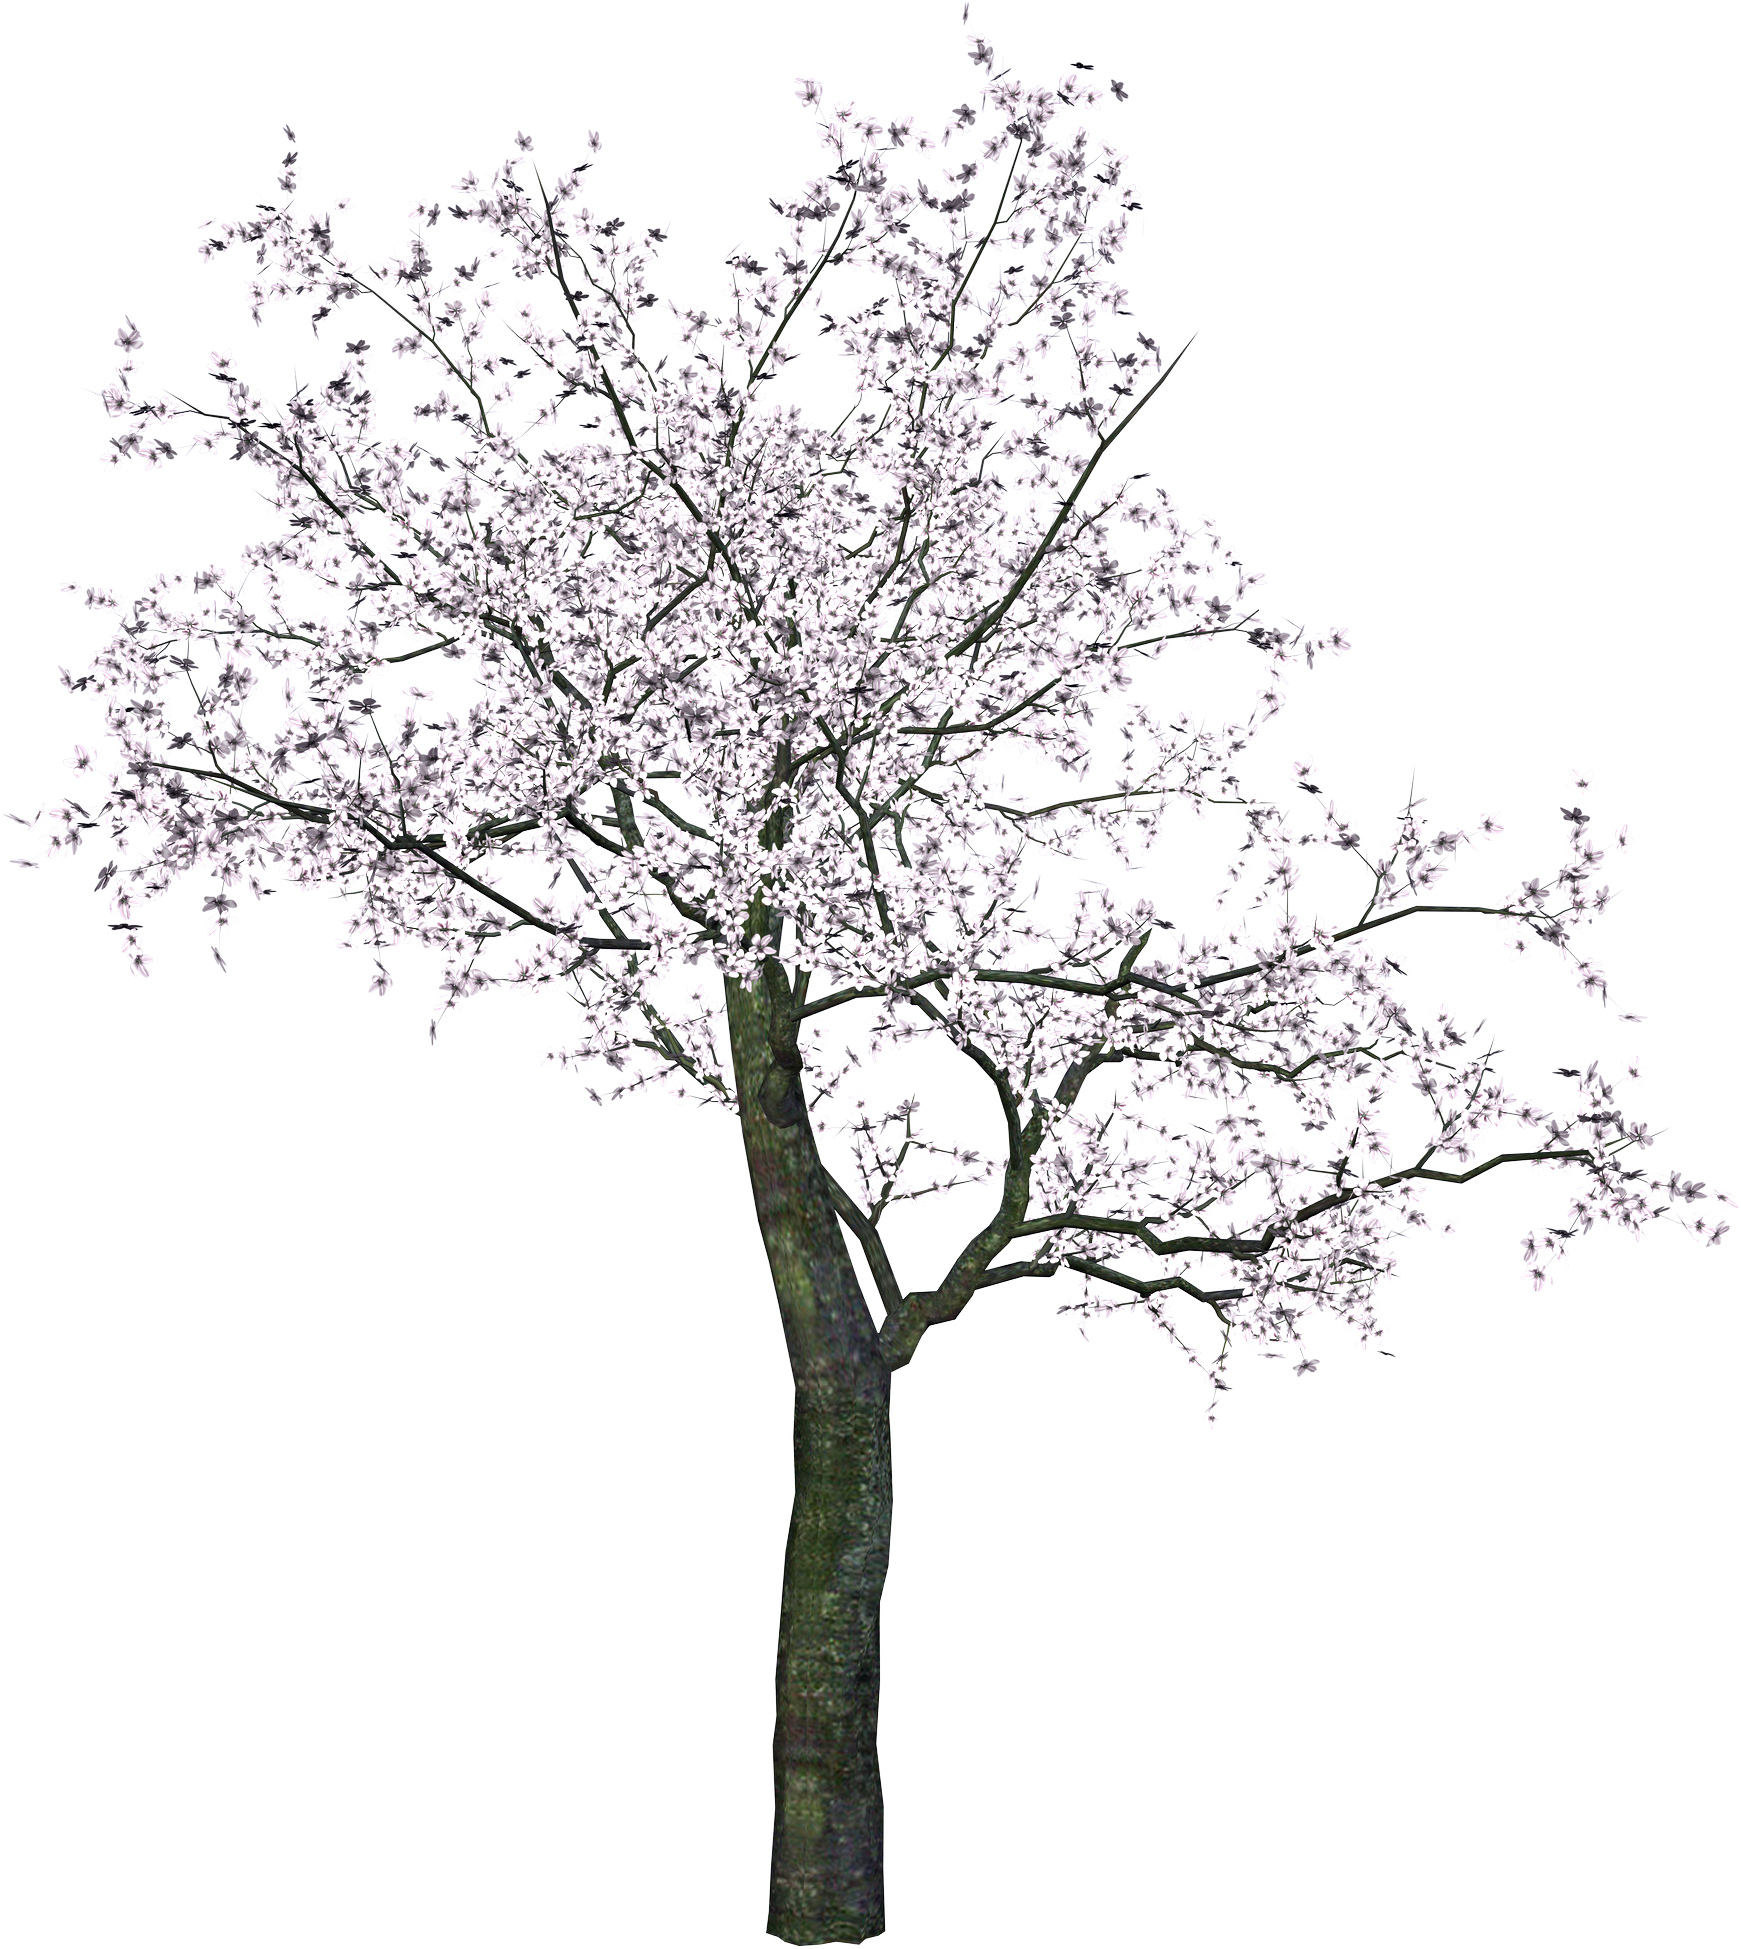 Cherry blossom tree clipart black and white image transparent stock Cherry Tree PNG Transparent Image | diseño | Pinterest | Cherry tree image transparent stock